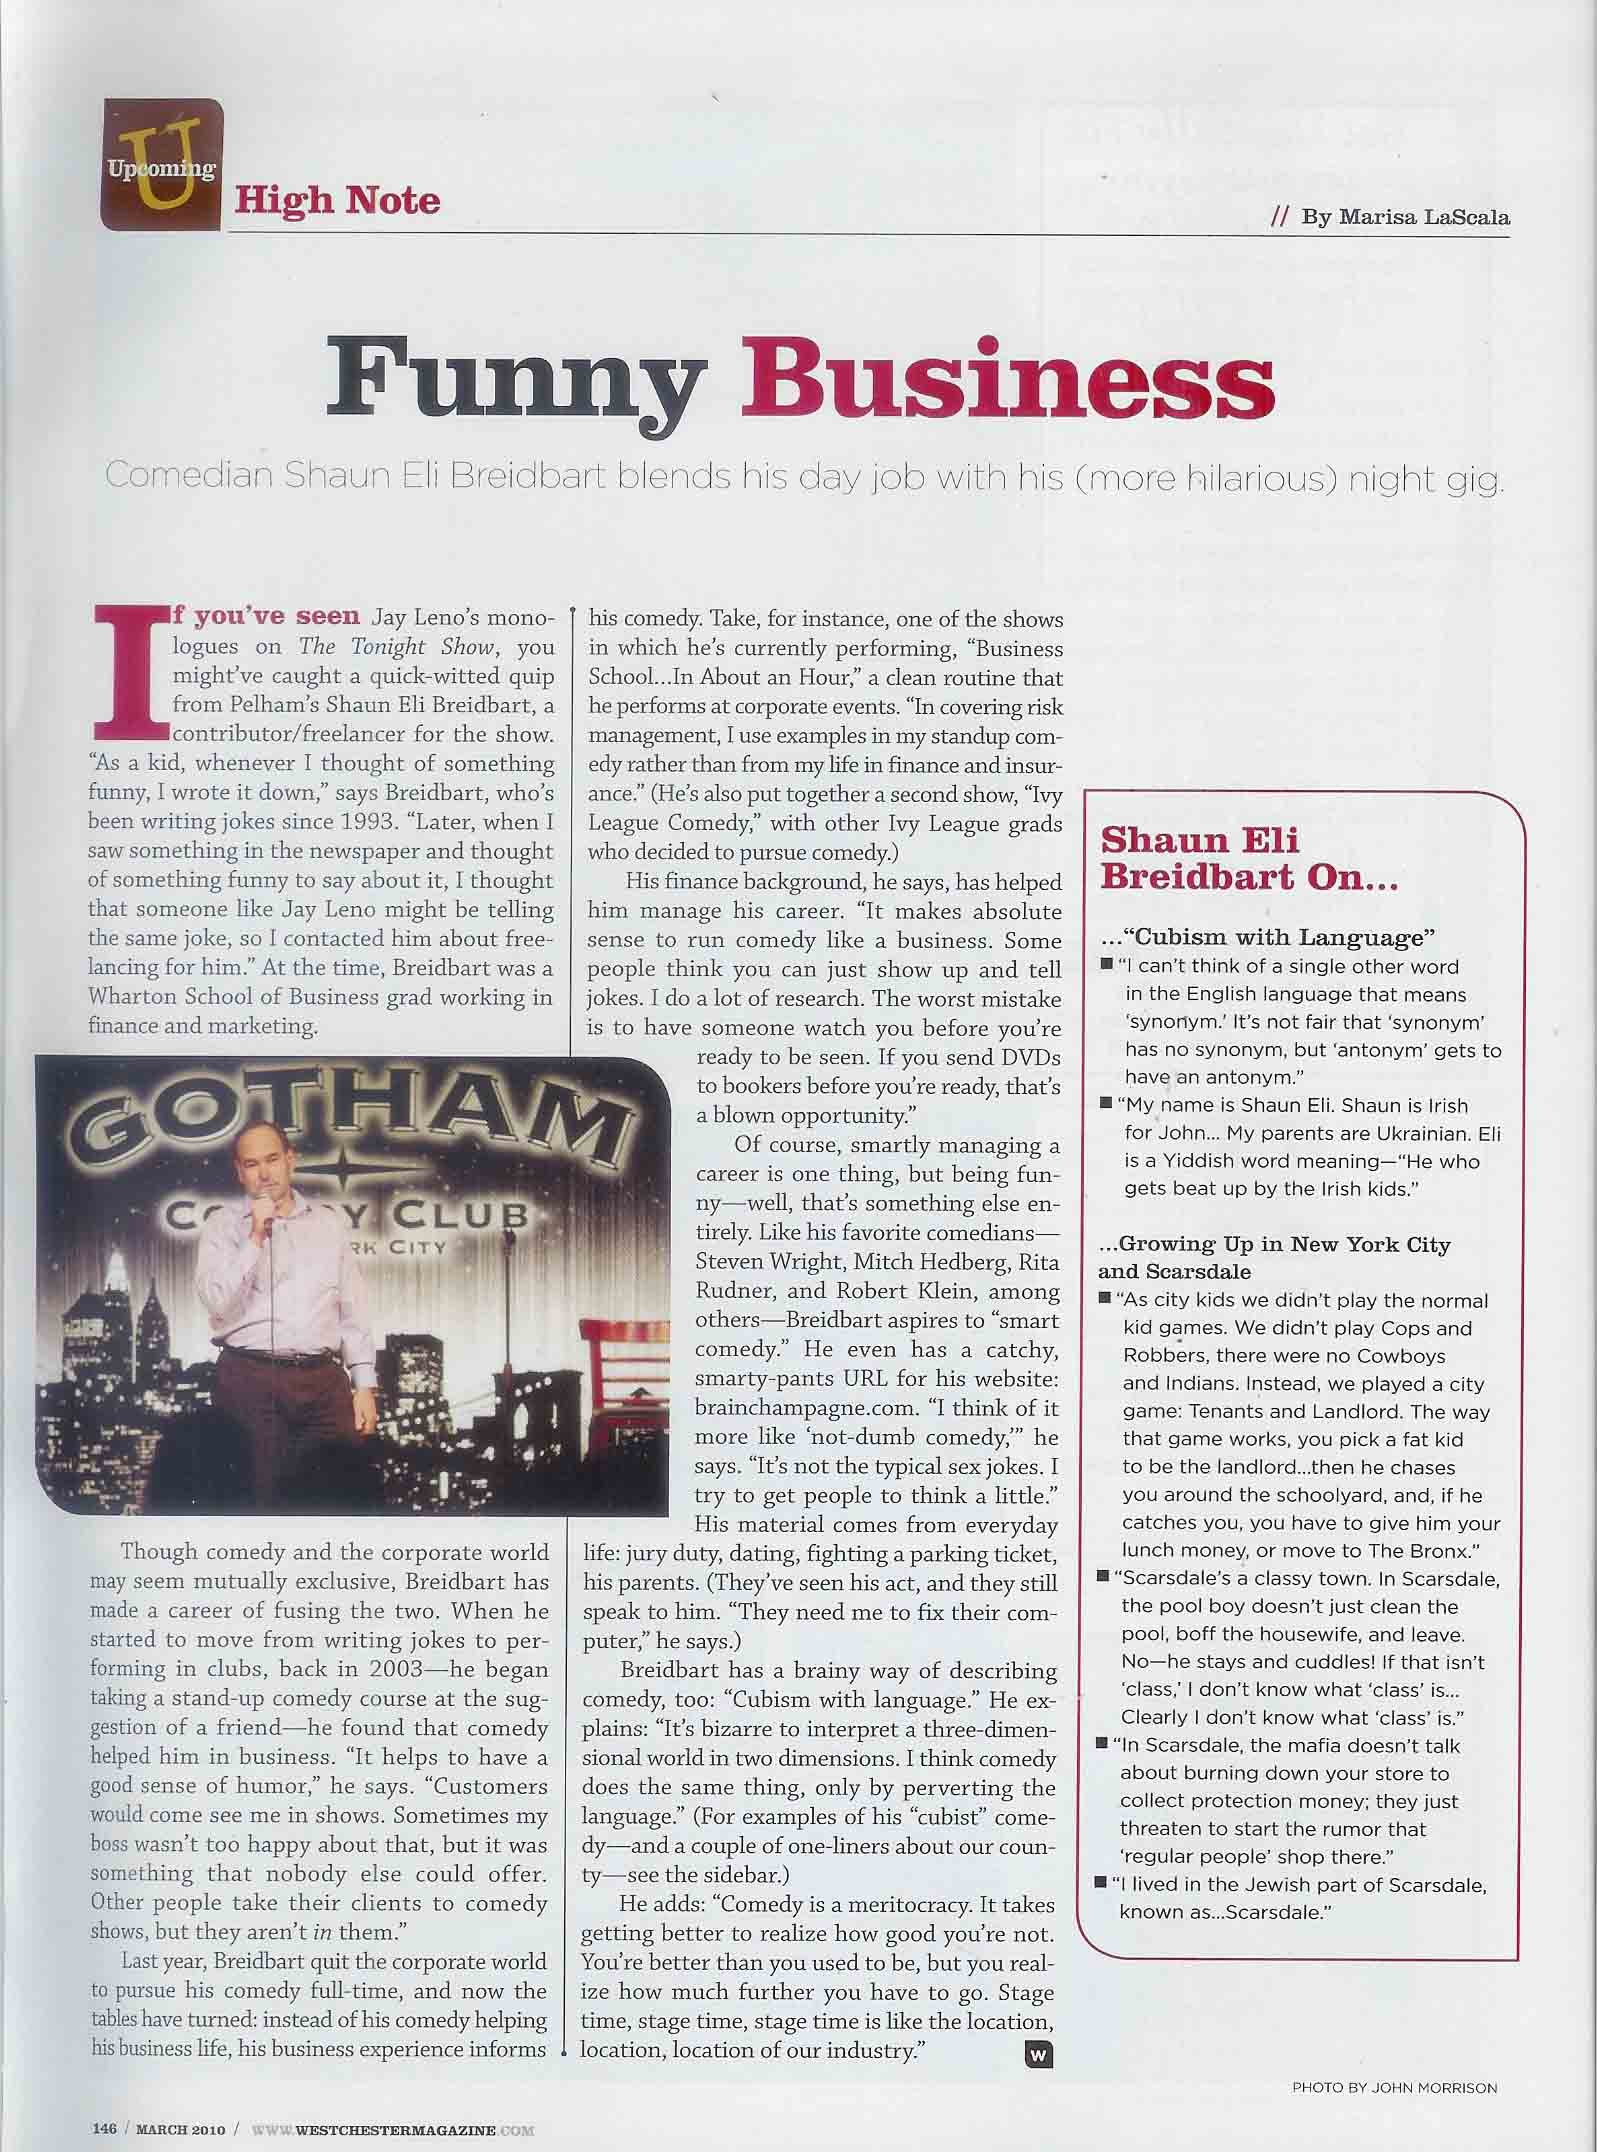 Westchester Magazine article on comedian Shaun Eli